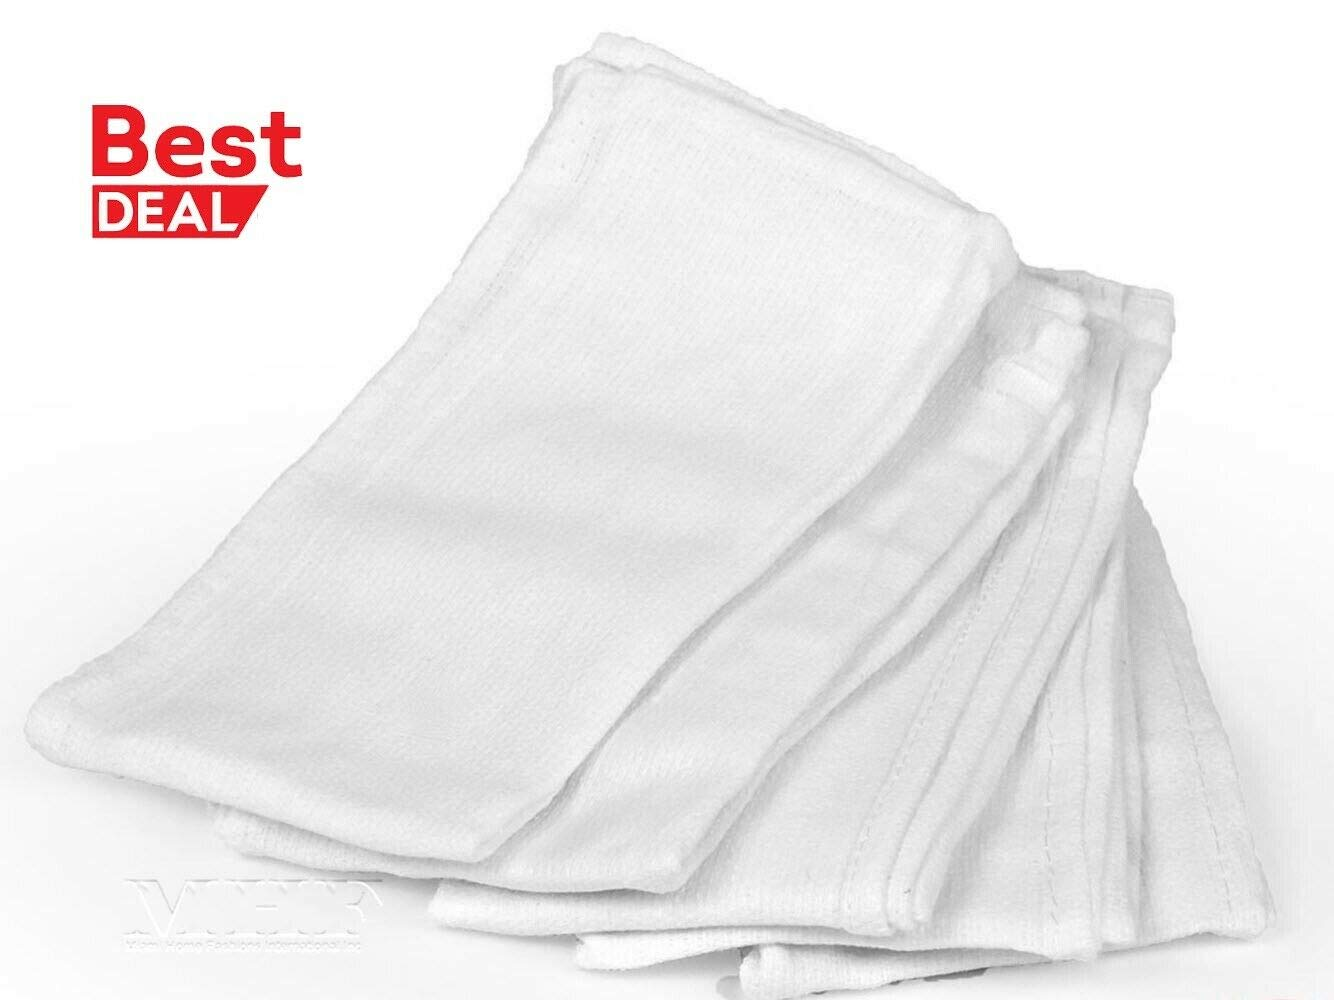 Super Soft White Glass Cleaning Huck/Surgical/Shop and Detailing Towels MTX*STWL 50PC by E_GGW (Image #3)